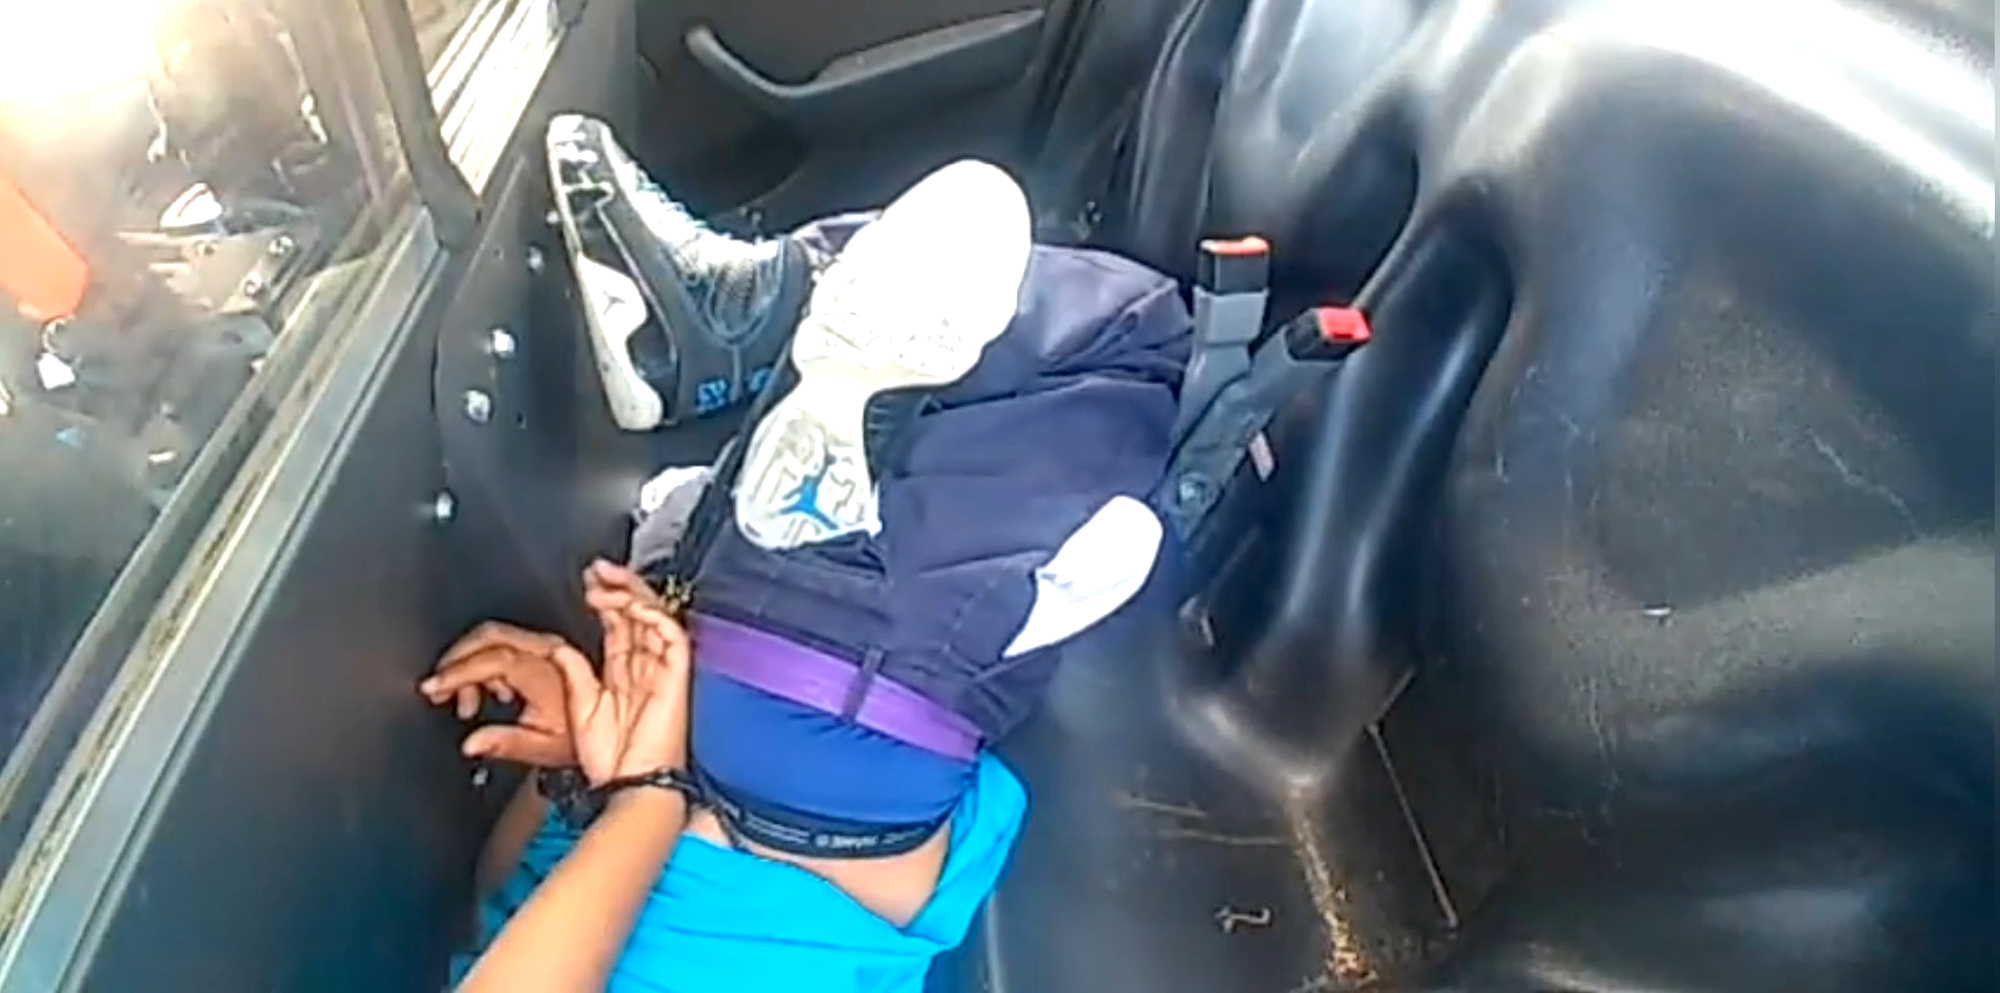 Cop Leaves Screaming Black Woman Face Down in Back-Seat Footwell